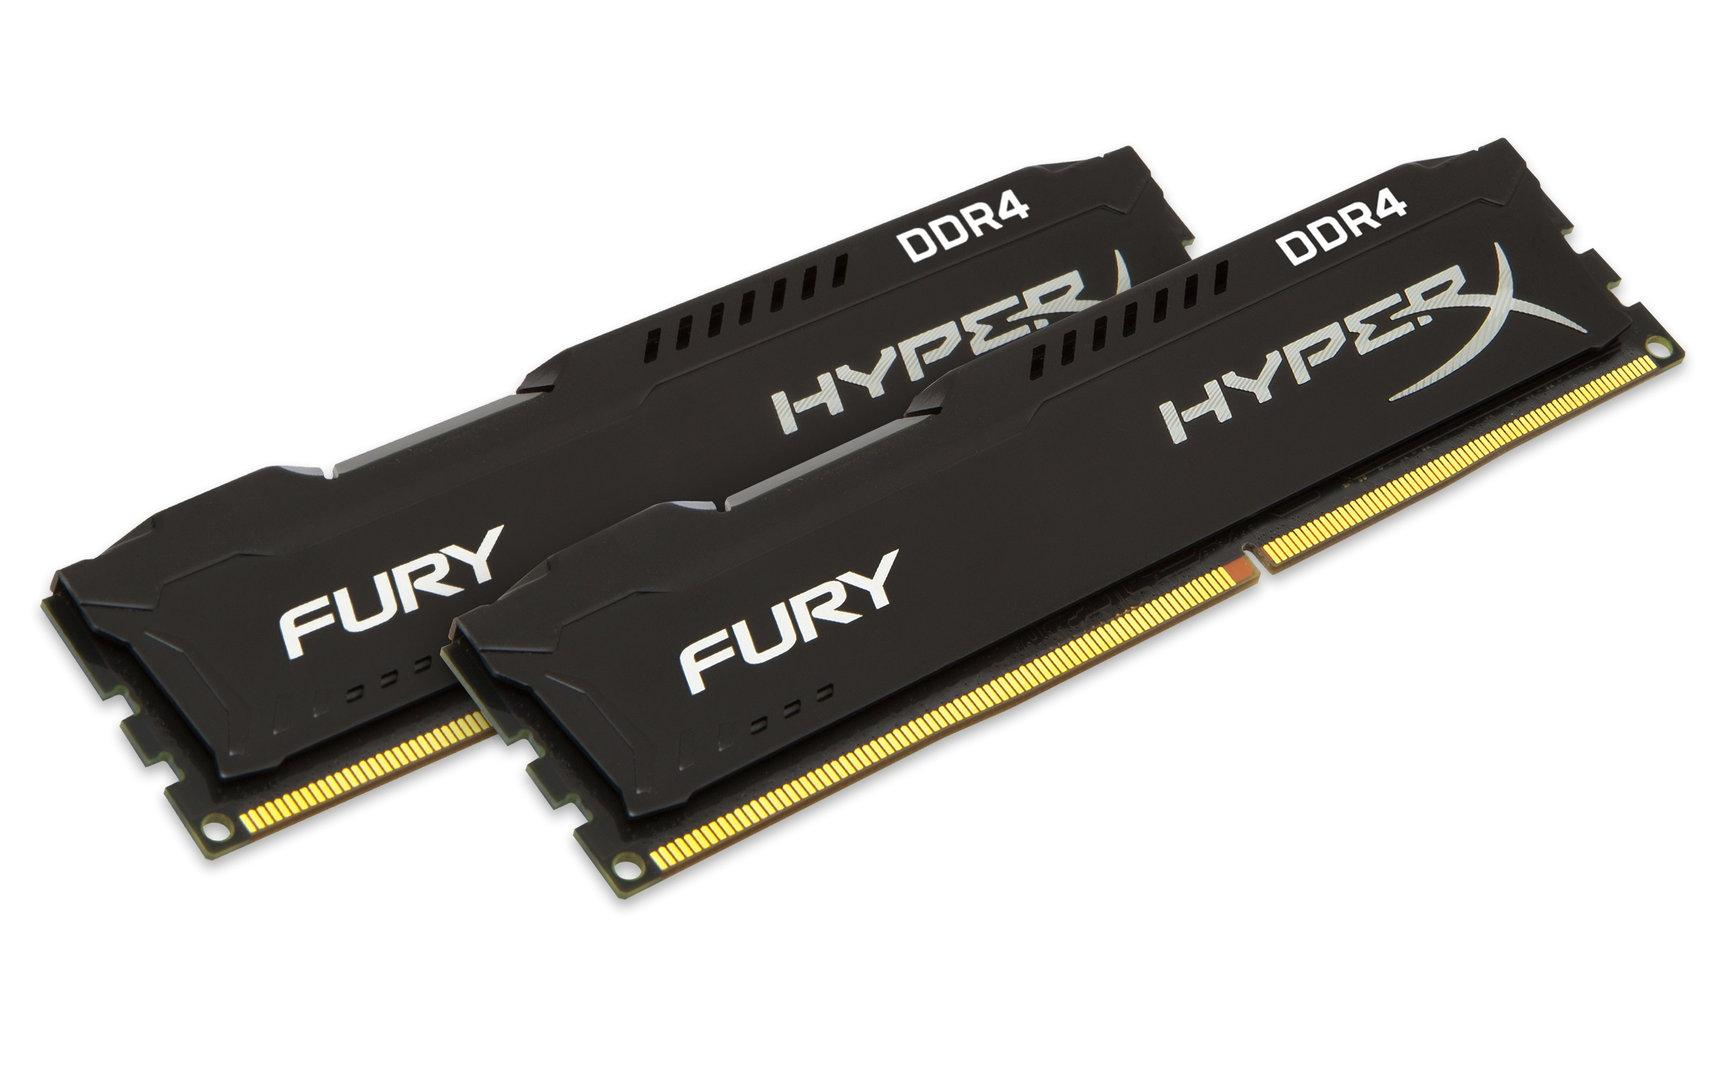 Ram PC 8gb DDR4 kingston Hyperx bus 2133 bảo hành 3 tháng lỗi 1 đổi 1 - Ram PC 8gb DDR4 kingston